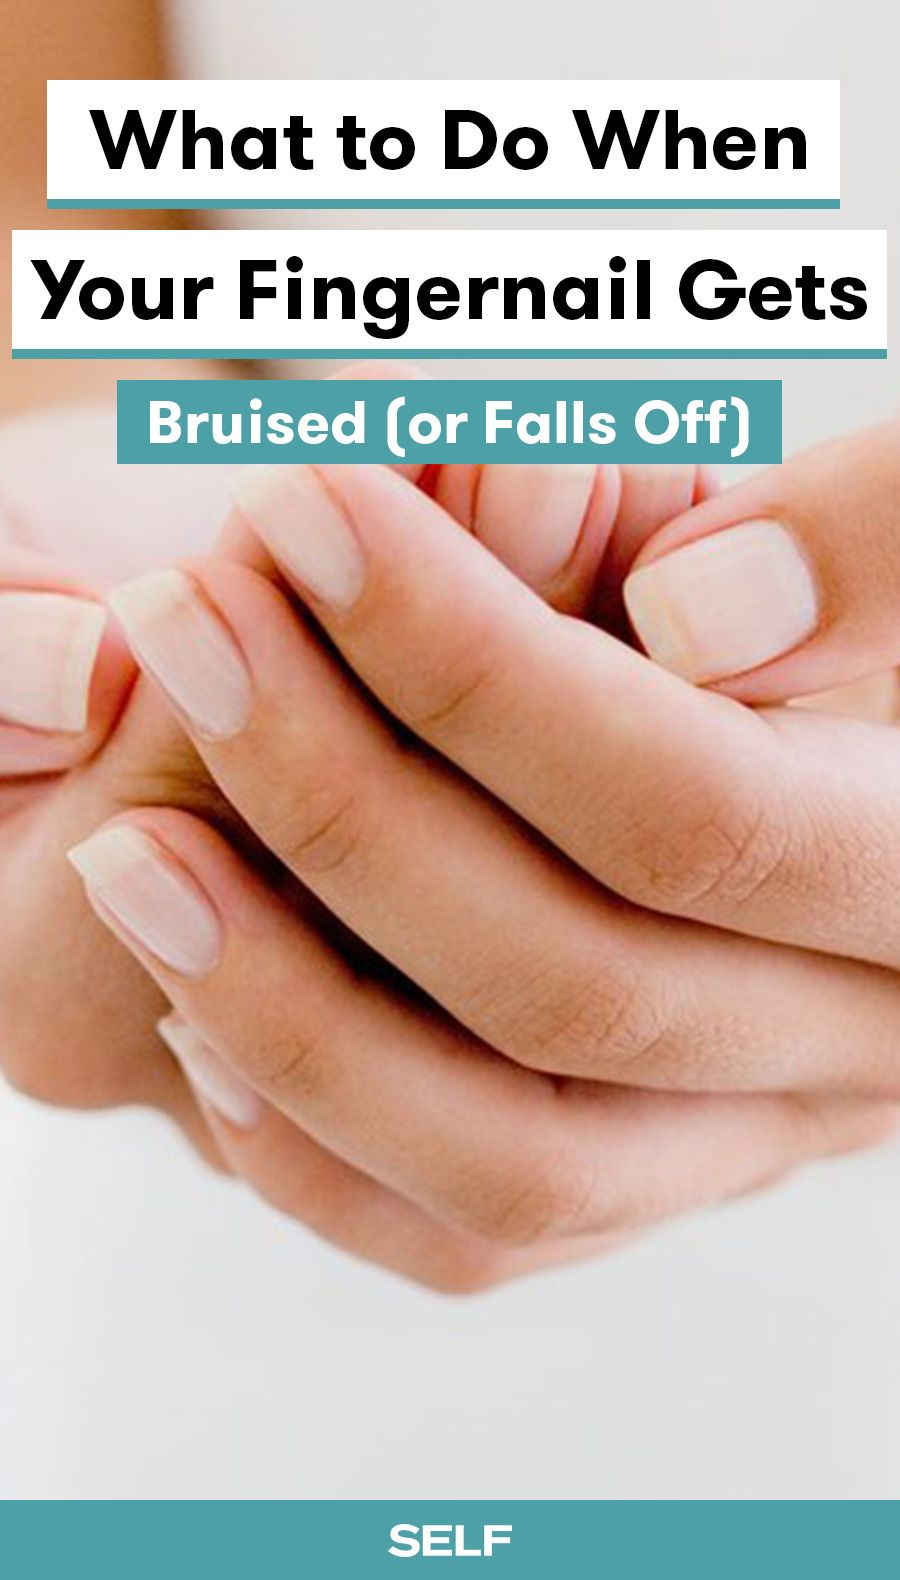 What to Do When Your Fingernail Gets Bruised (or Falls Off) | Pinterest